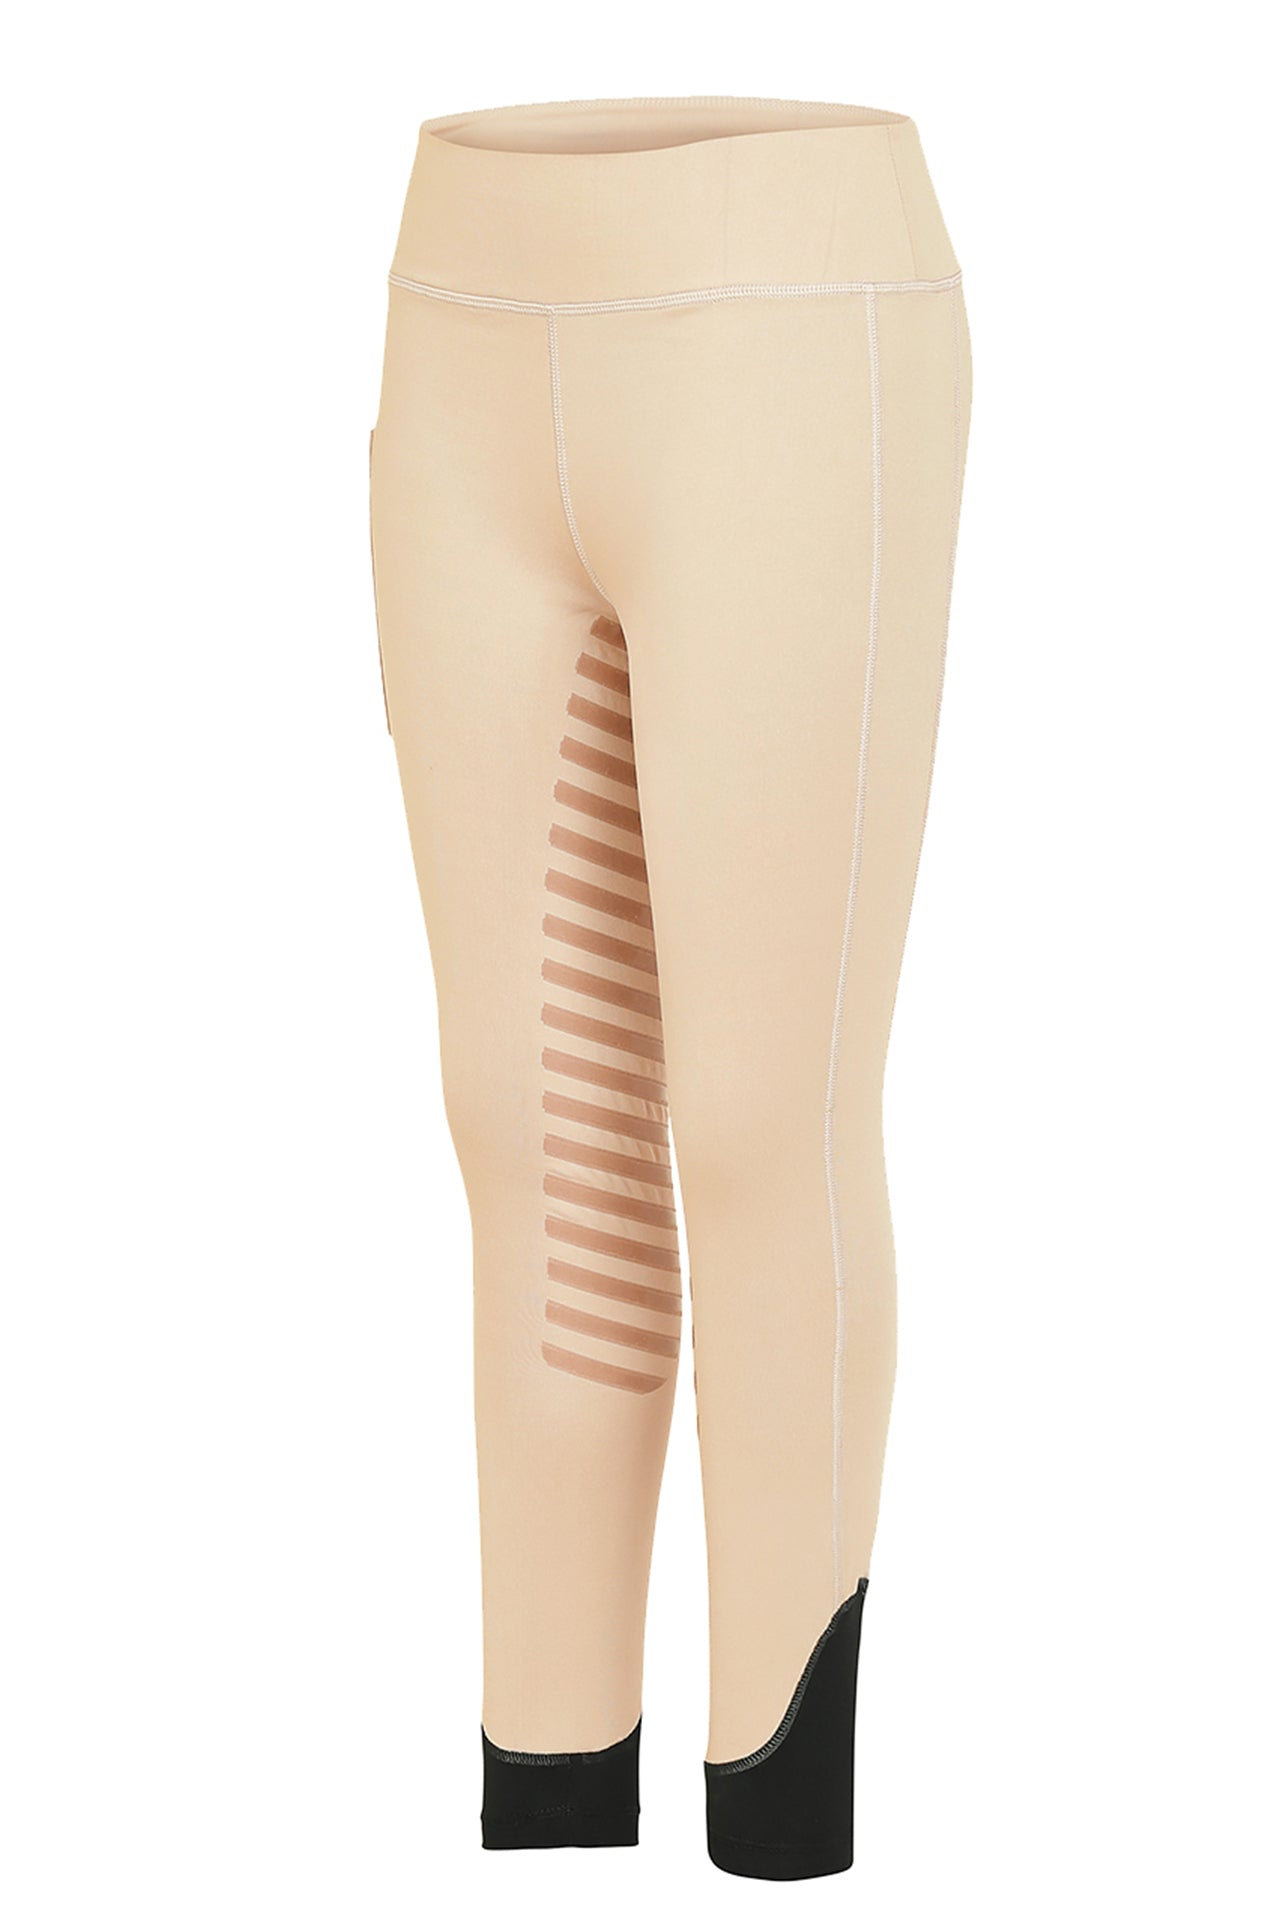 Ecorider By TuffRider Ladies Zion Tights_1